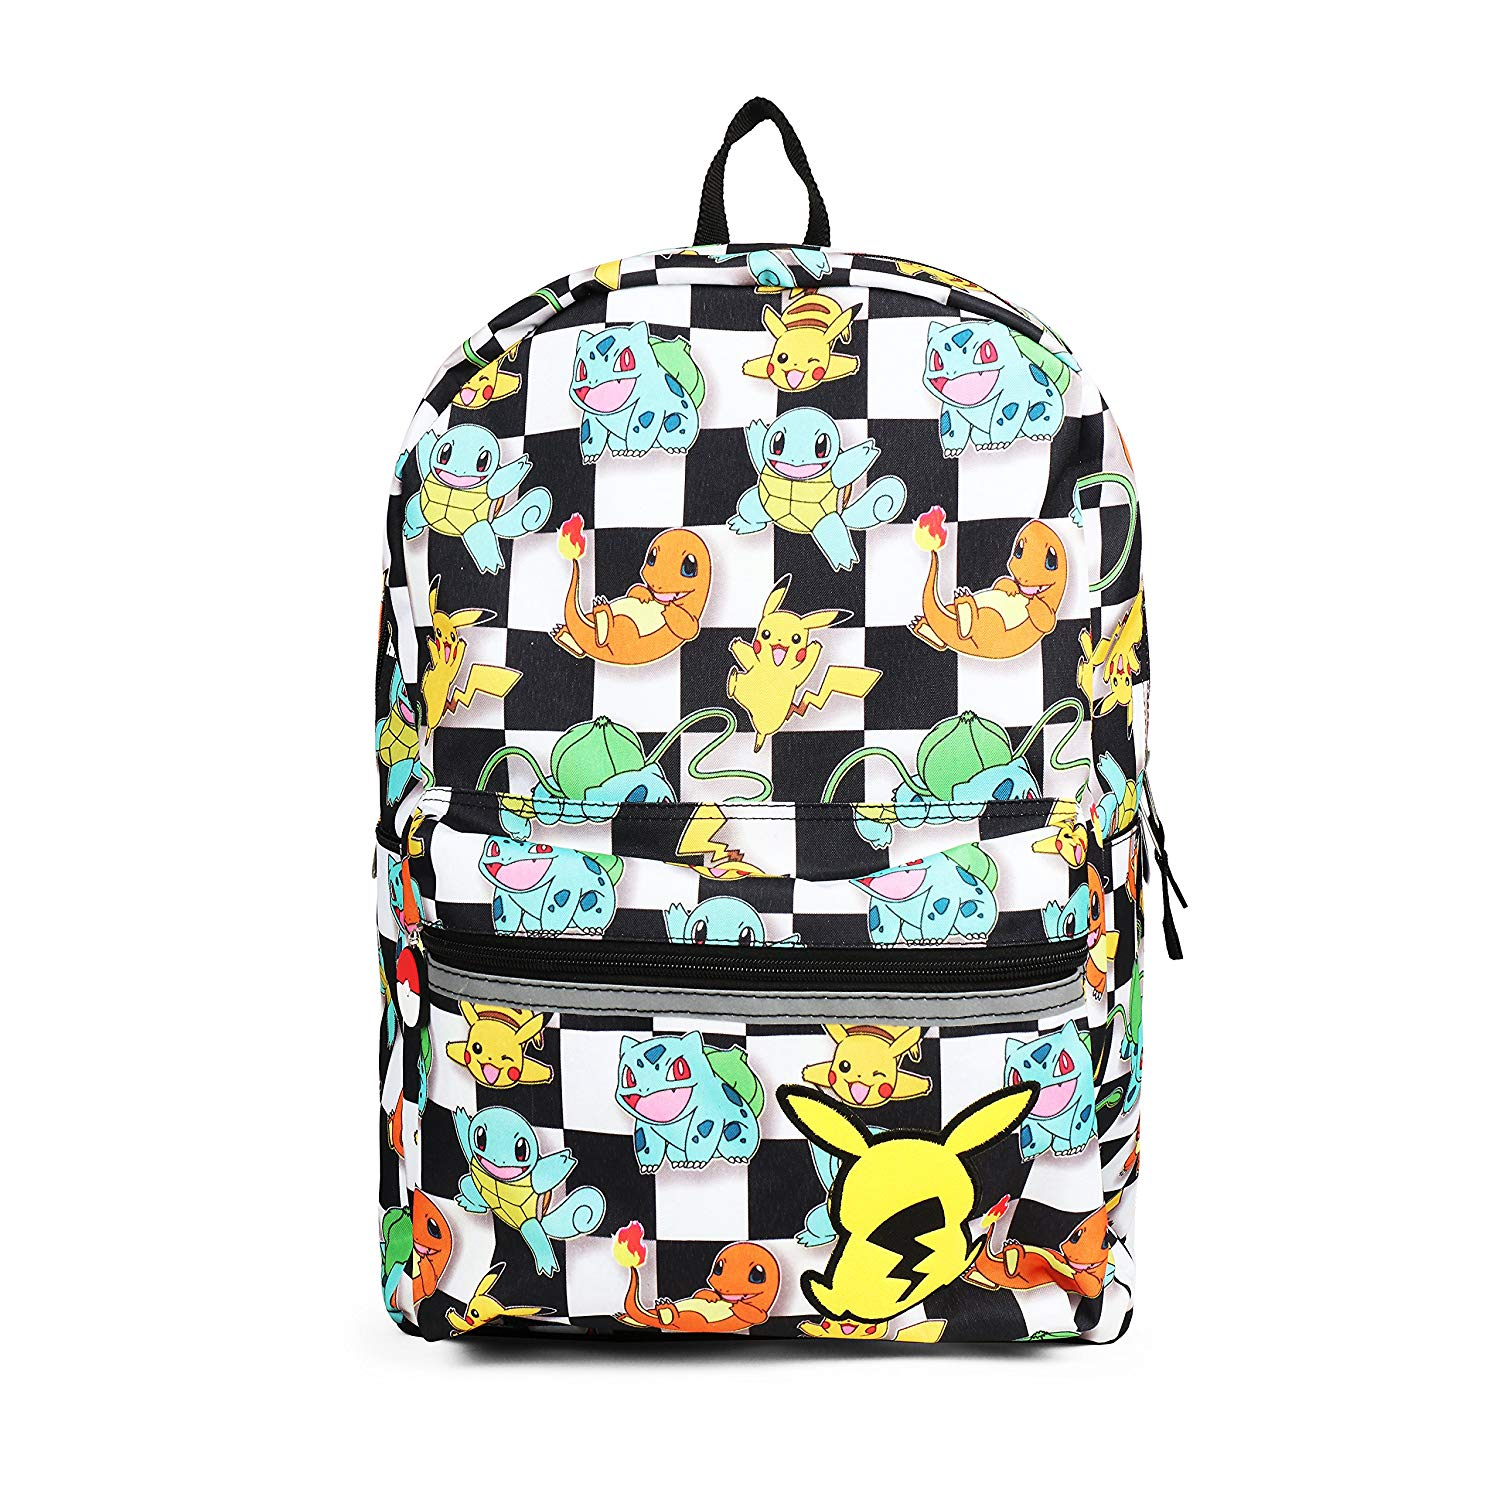 15af0cb07b4d Get Quotations · Pokemon All Over Print Checkered Characters Backpack  School Bag for Kids